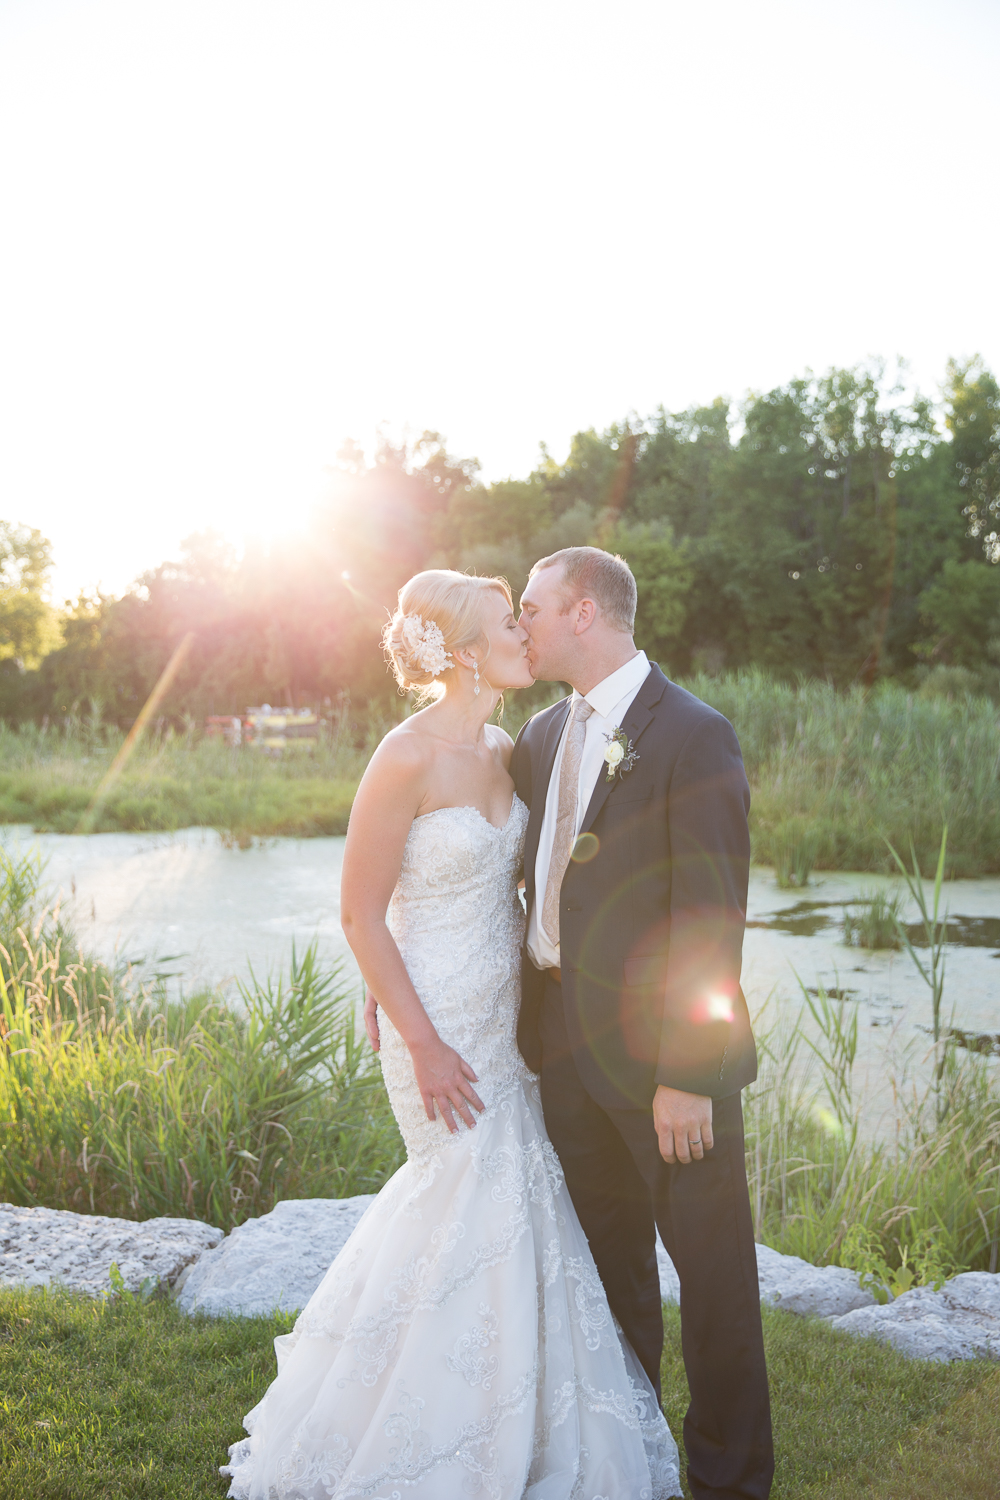 Green Bay Wedding Photography - Olde 41 - Lambeau Field Wedding - Whit Meza Photography